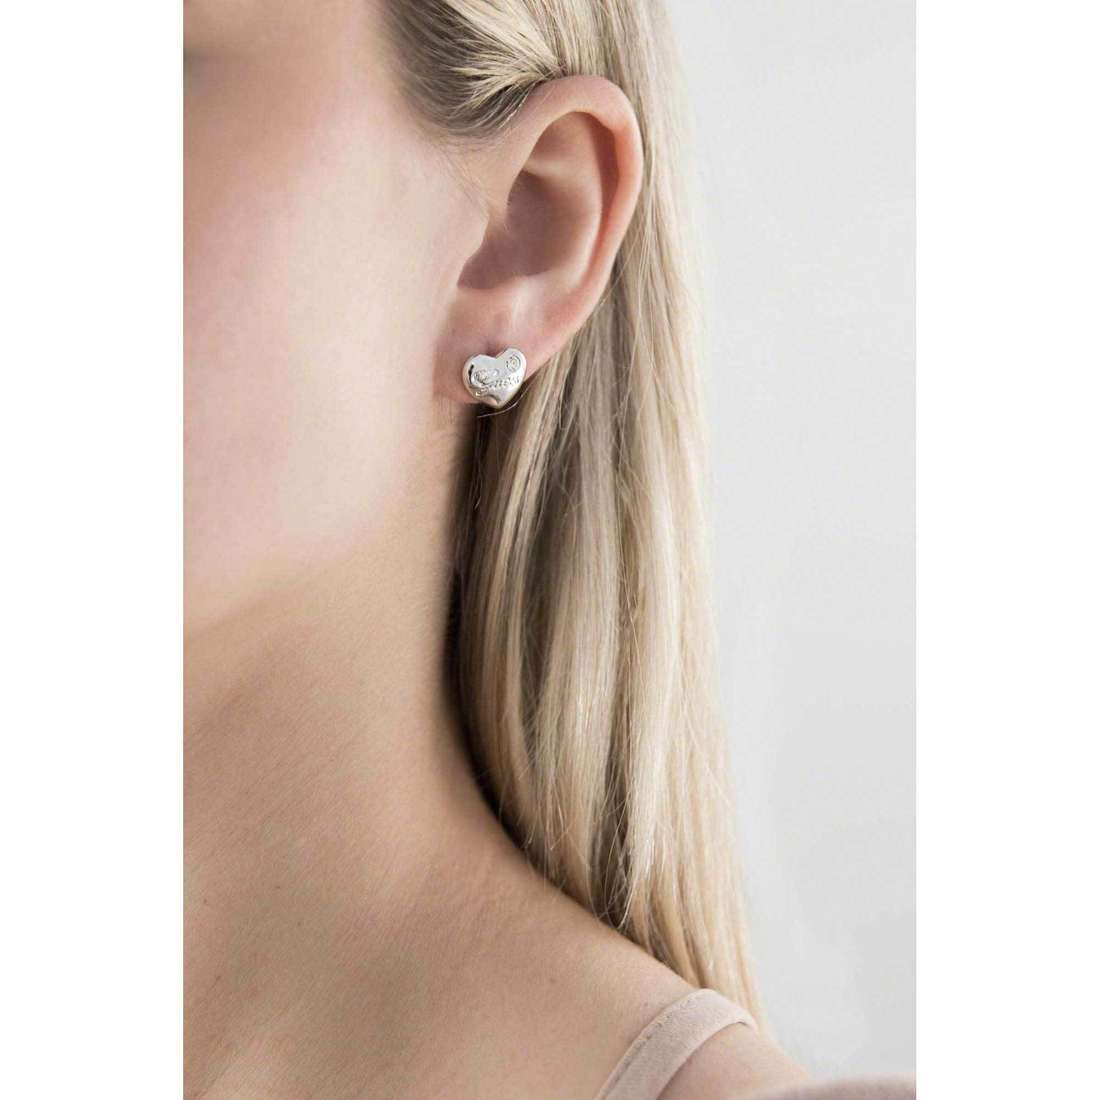 Guess boucles d'oreille Iconic femme UBE21519 indosso